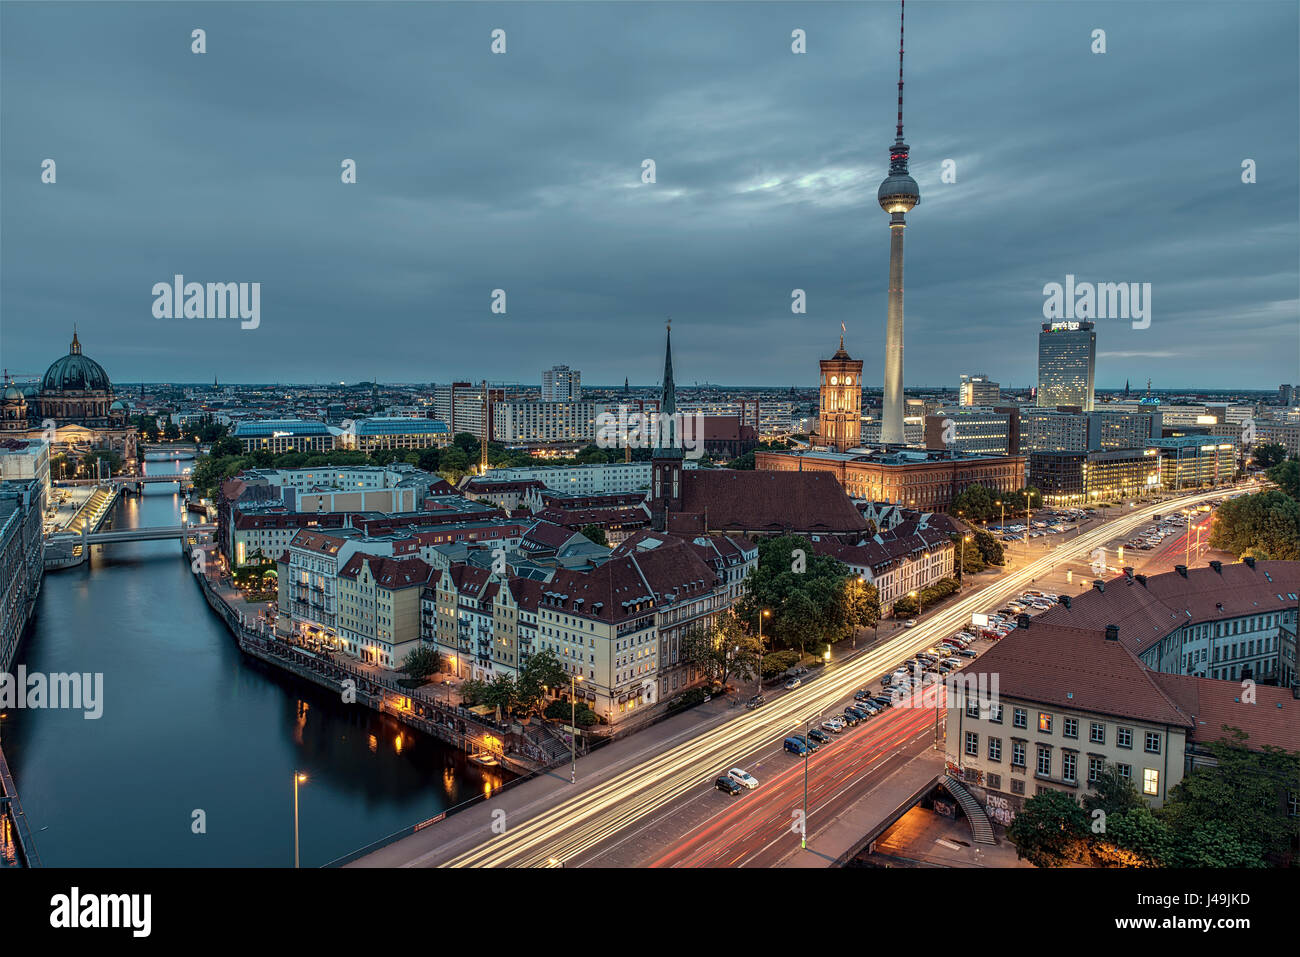 Fischer Insel - A view of Berlin - Germany - Stock Image